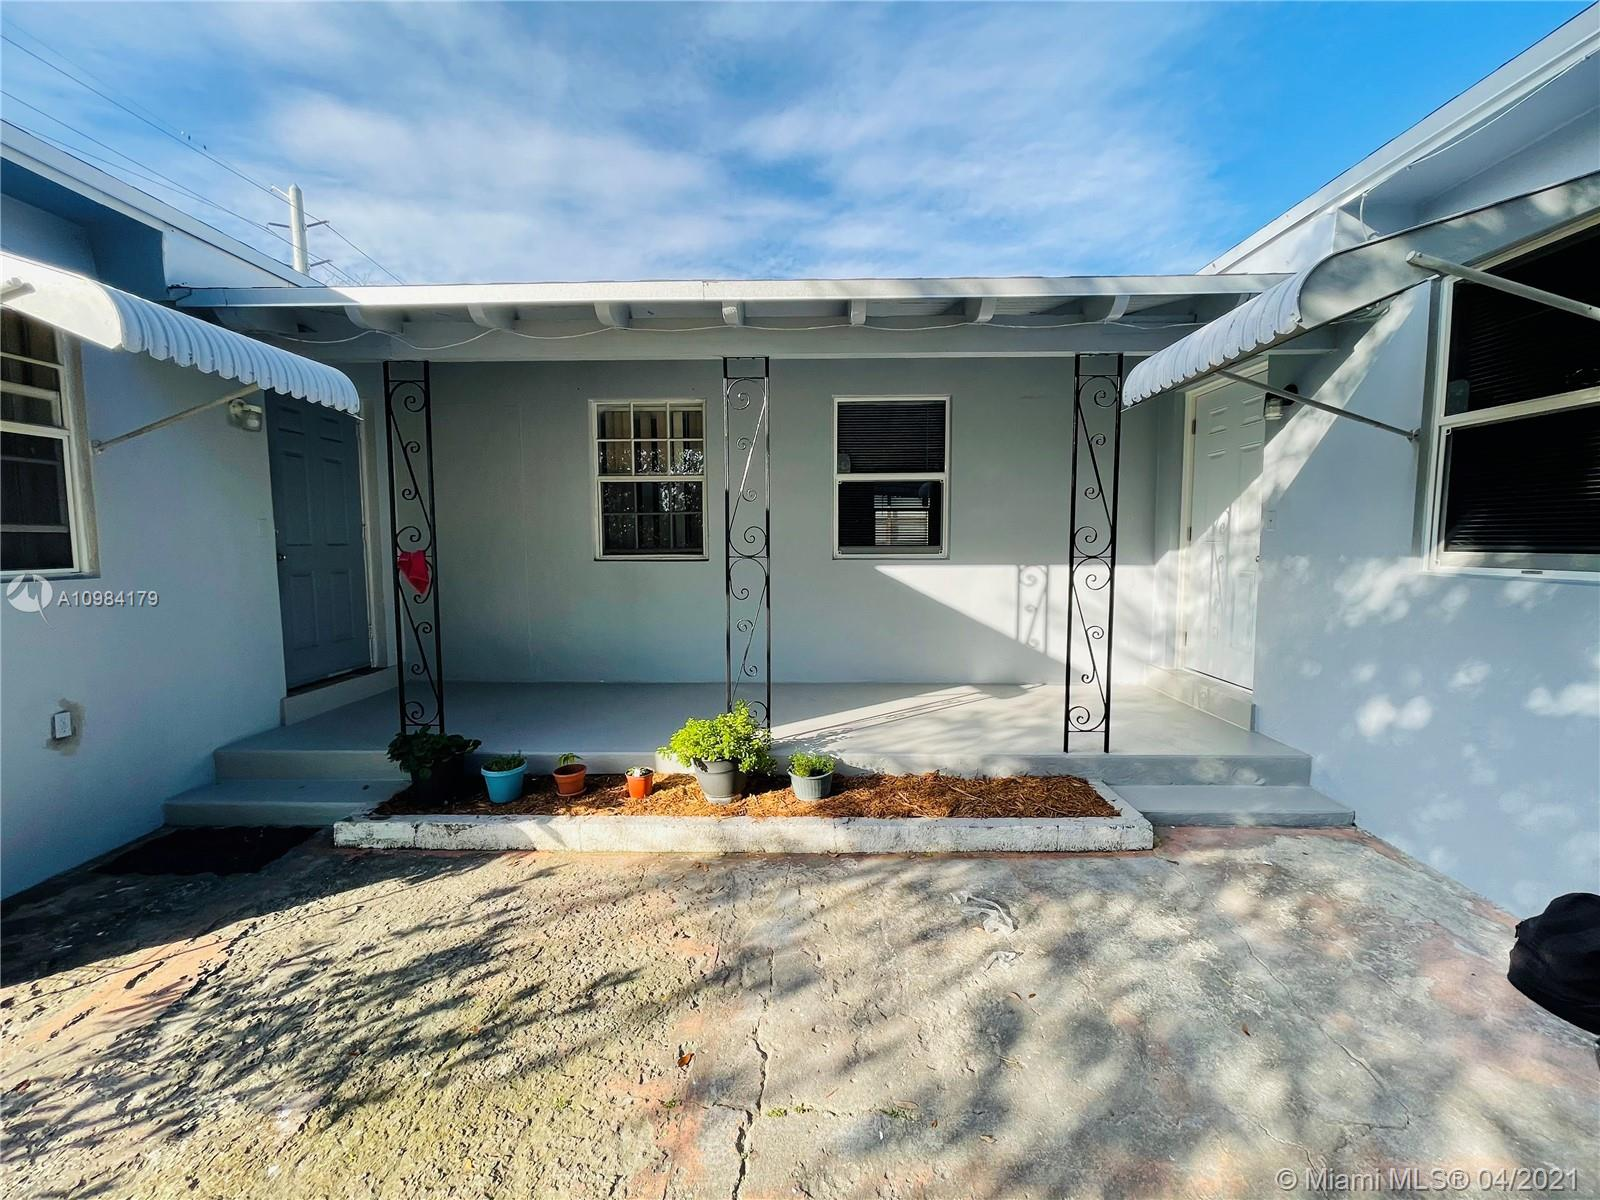 Hollywood Little Ranches, 803 N 24th Ave, Hollywood, Florida 33020